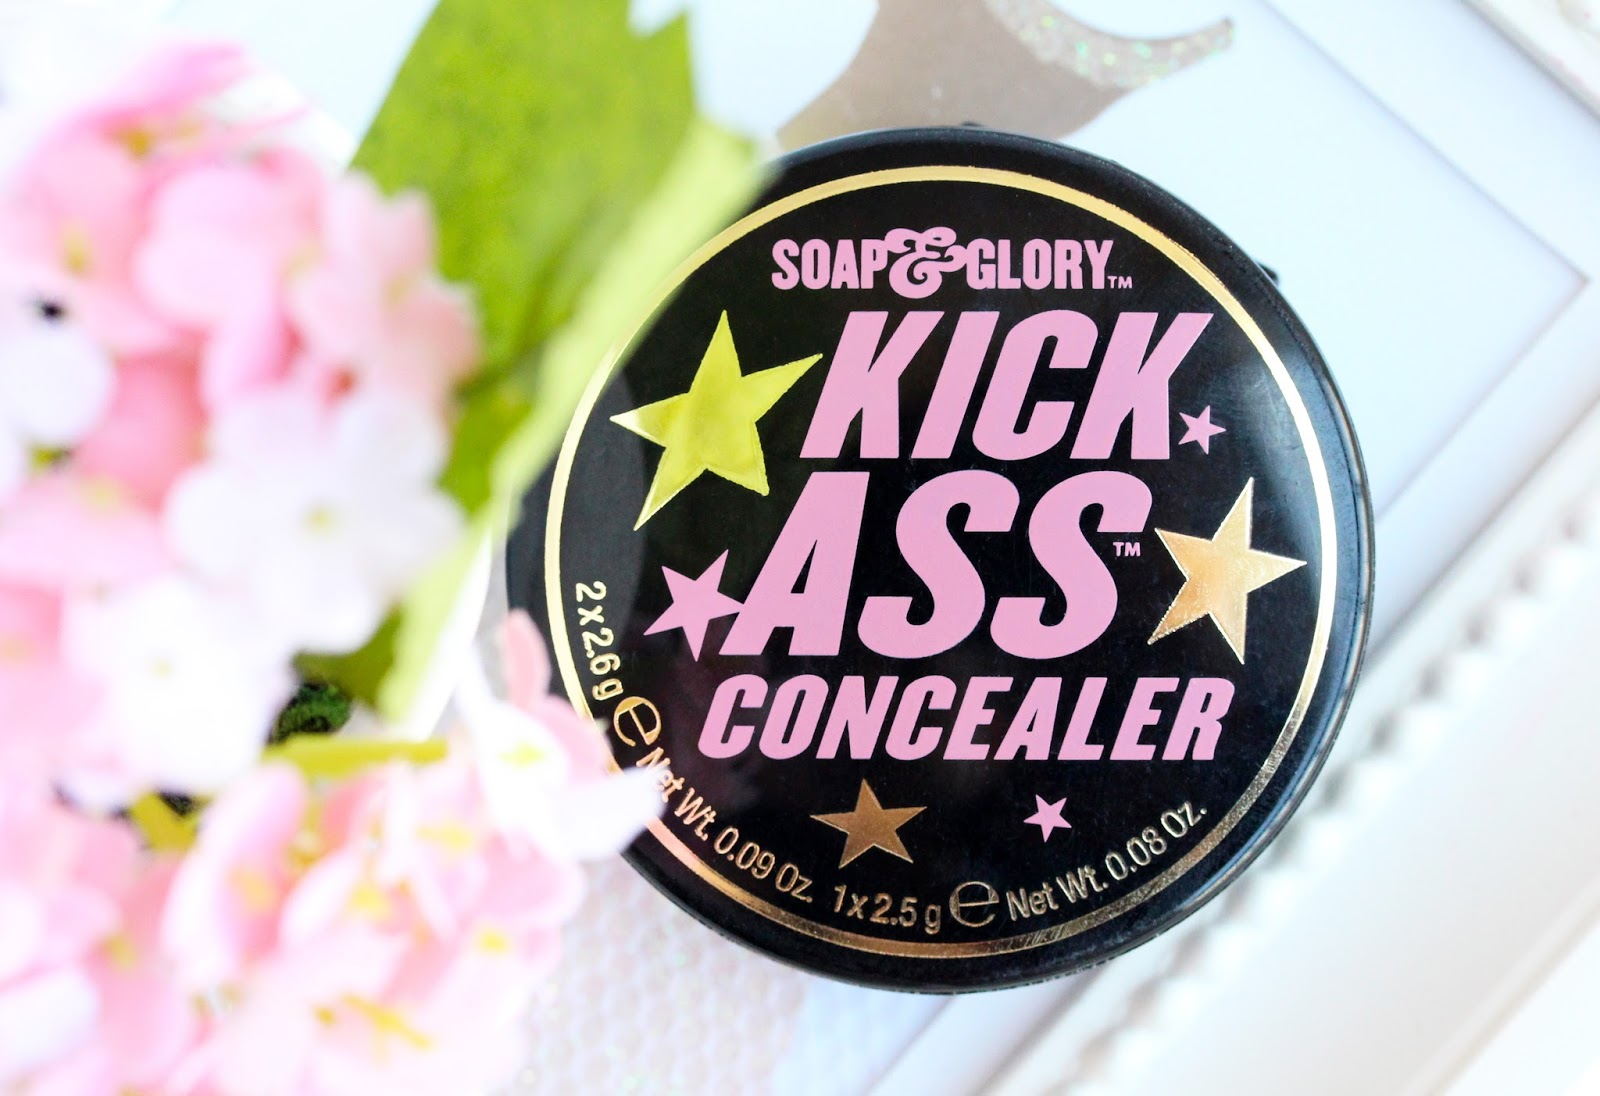 Soap & Glory Kick Ass Concealer